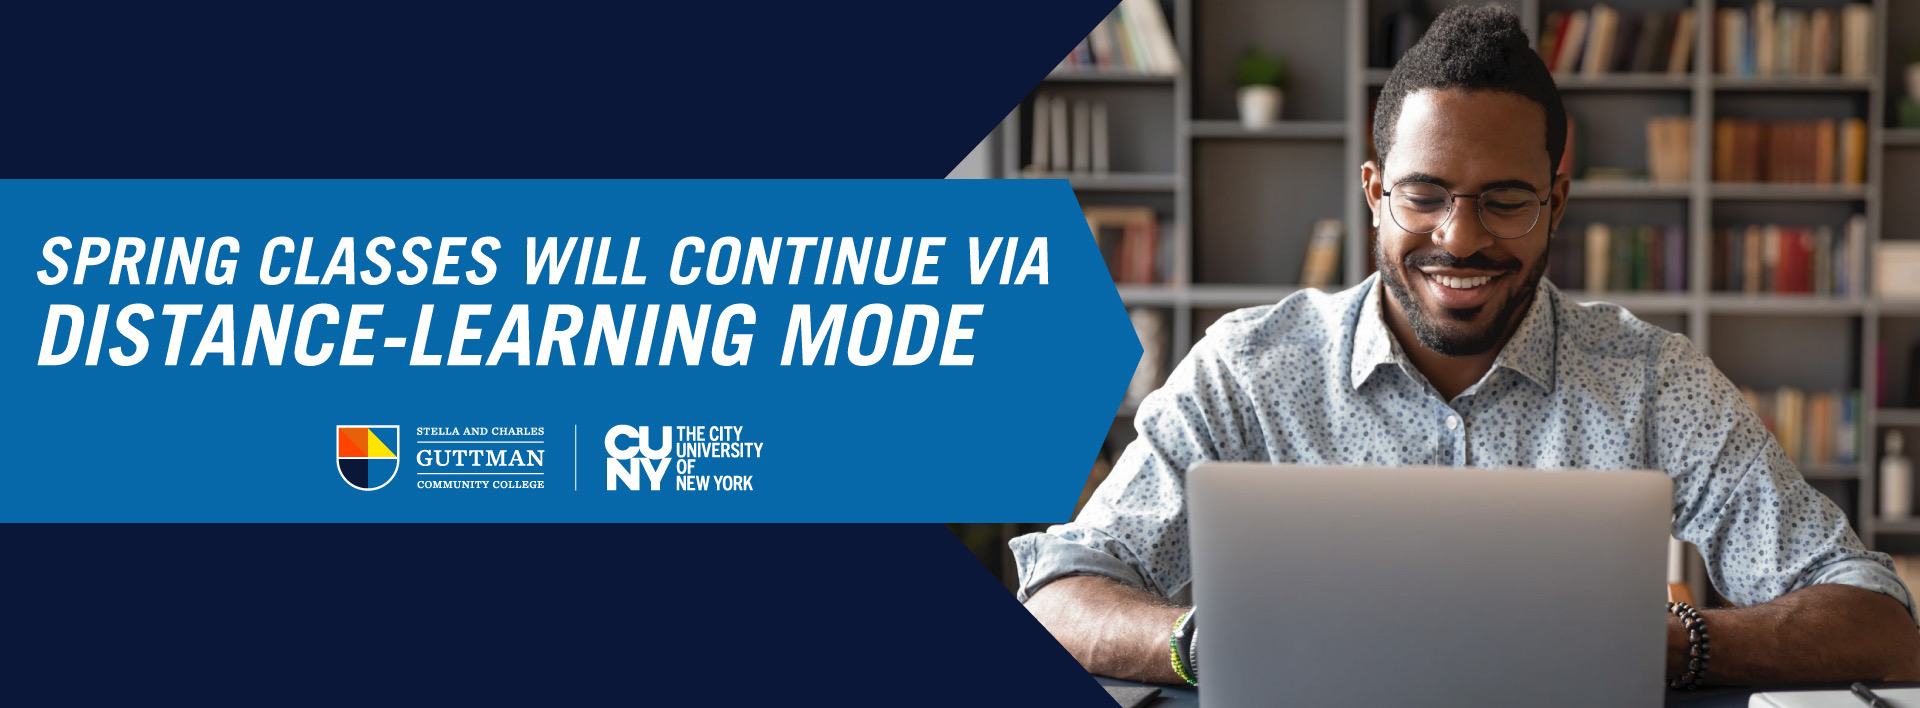 Spring Classes Will Continue via Distance-Learning Mode